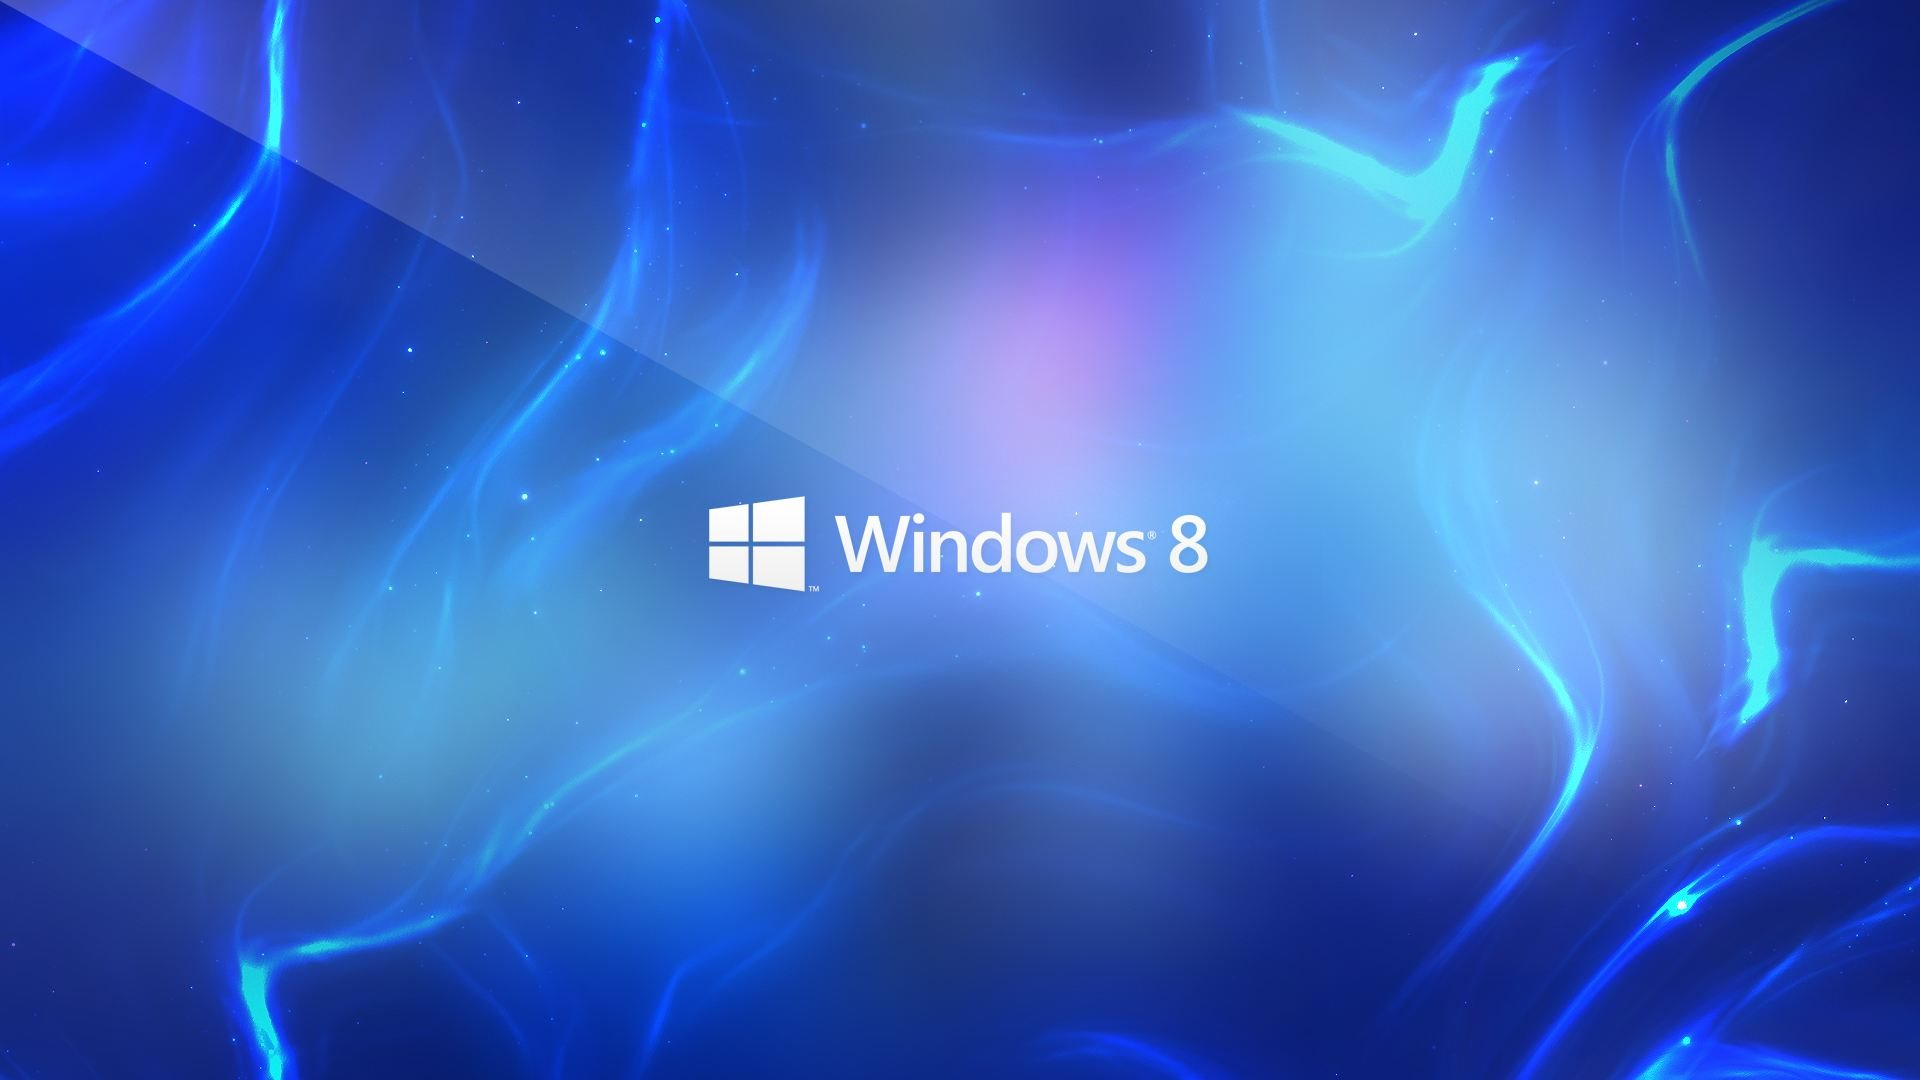 Microsoft windows 8 1 hd wallpaper picture image free for Window 8 1 wallpaper